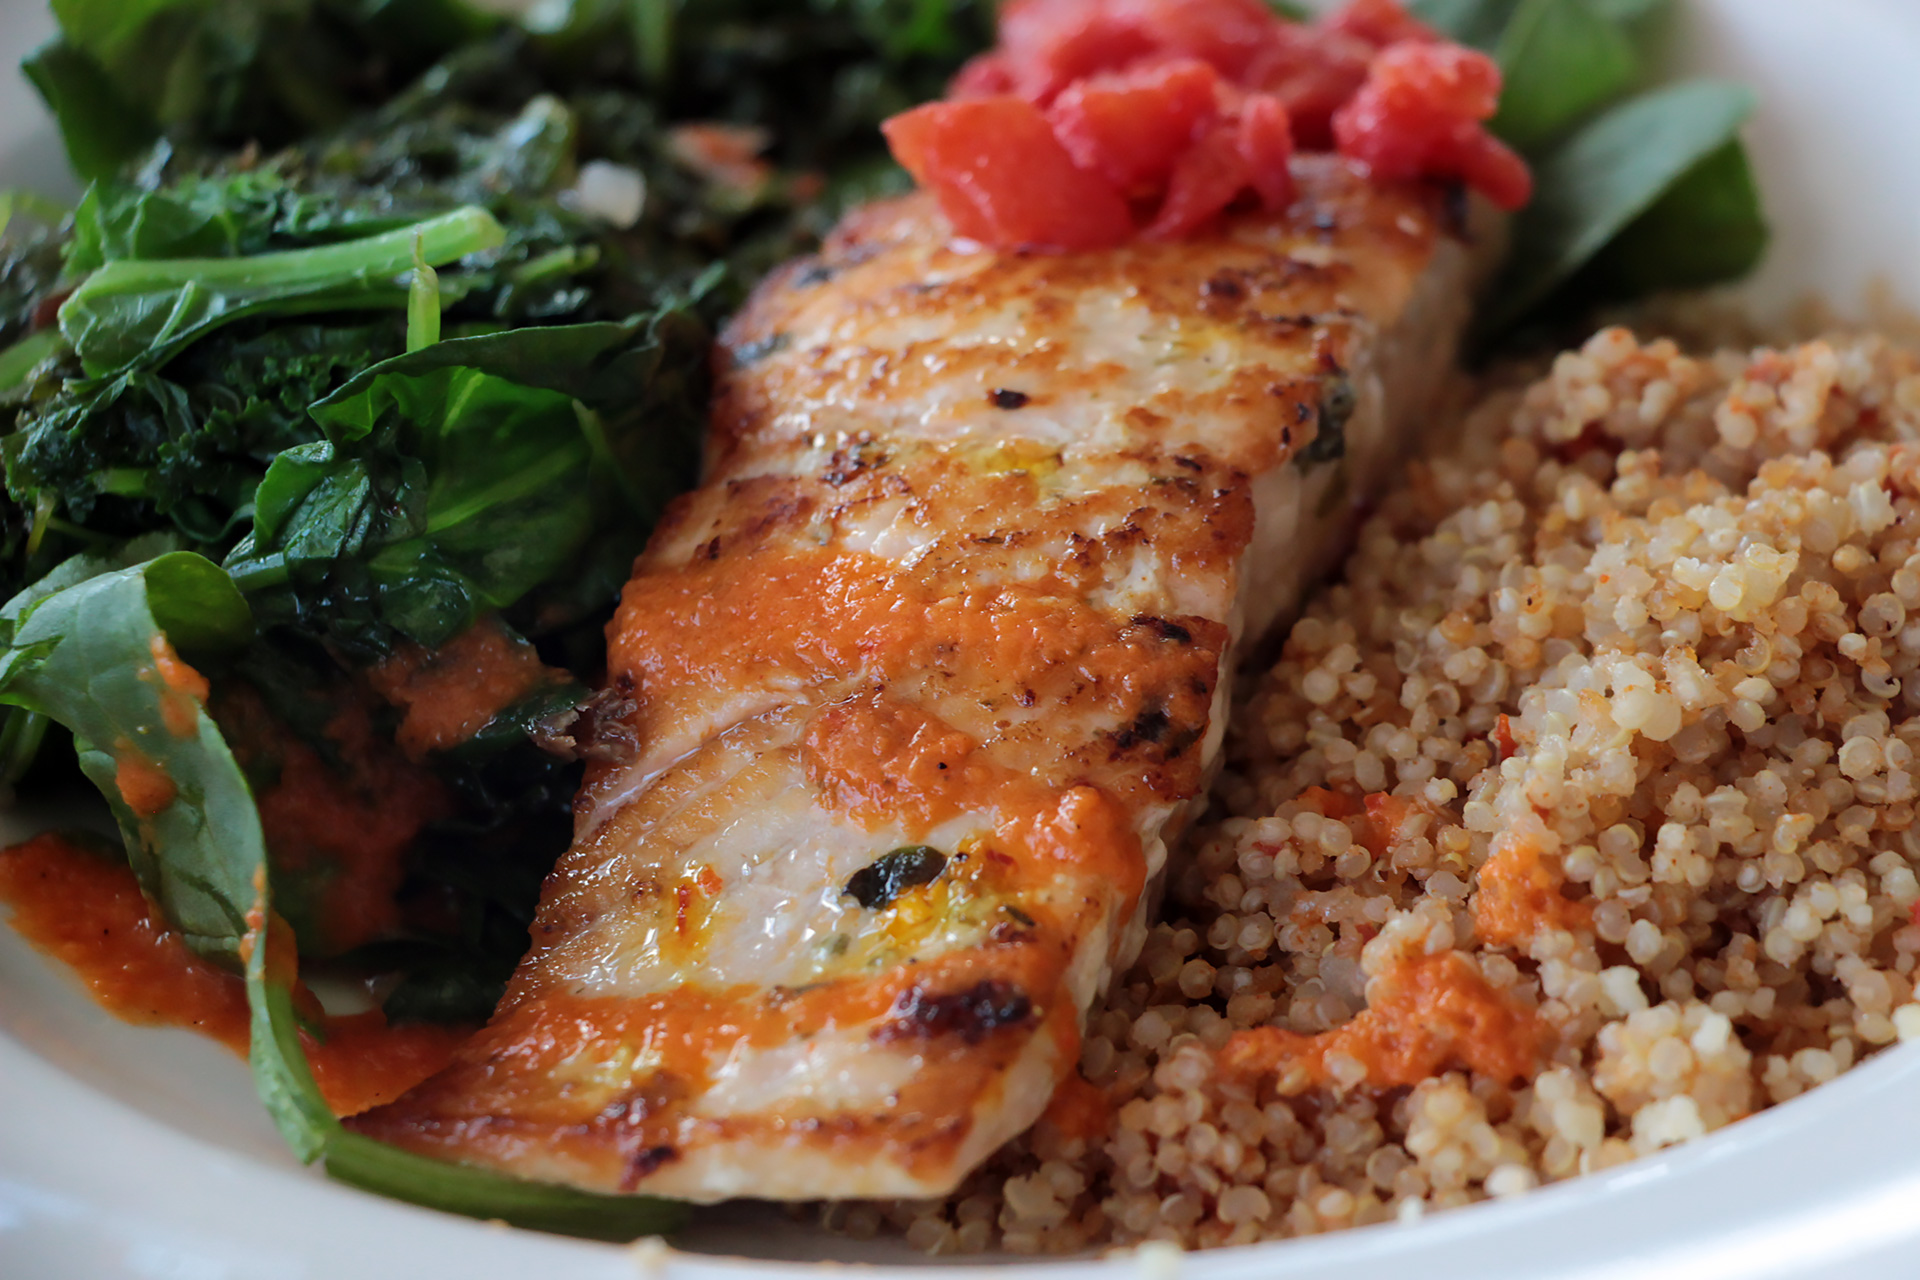 Wild salmon comes simply with quinoa and cooked spinach.